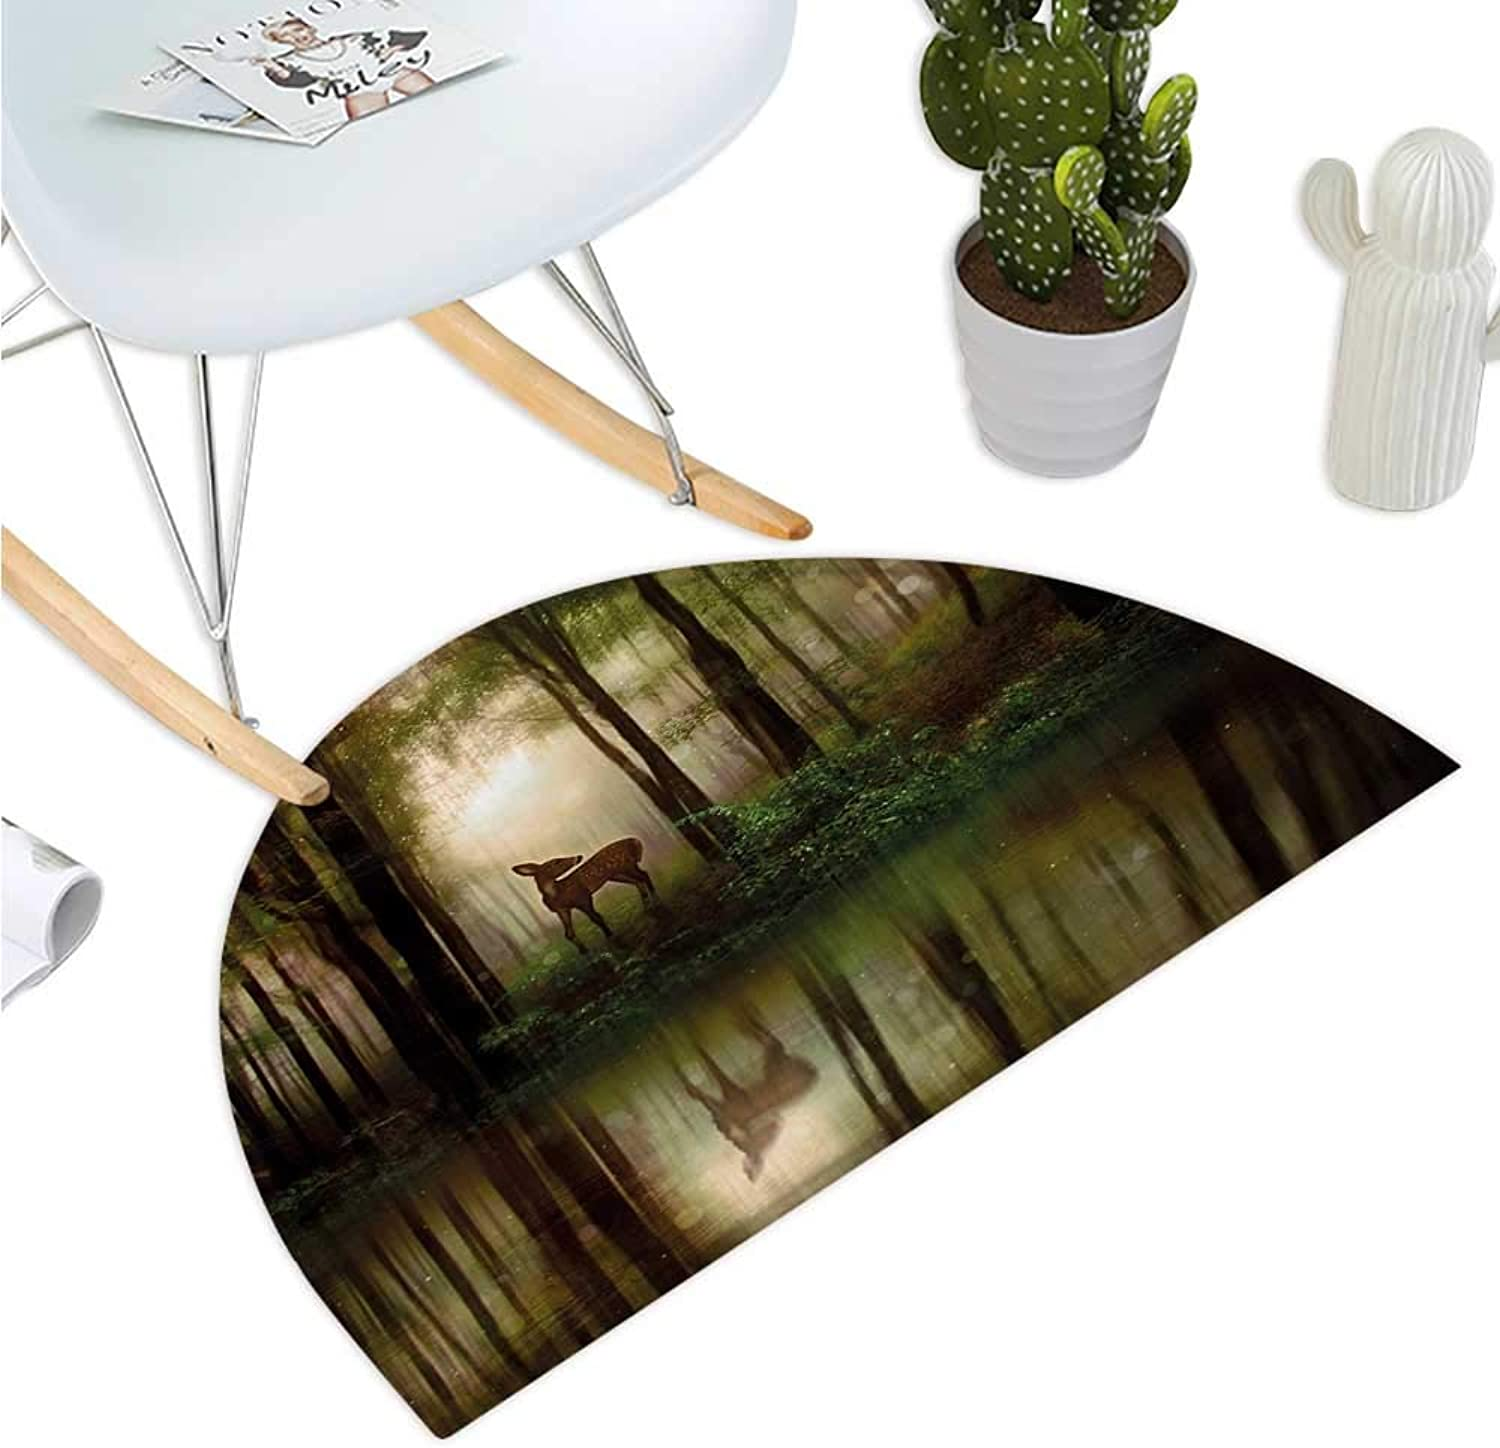 Nature Half Round Door mats Baby Deer in The Forest with Reflection on Lake Foggy Woodland Graphic Bathroom Mat H 51.1  xD 76.7  Fern Green Cocoa Brown